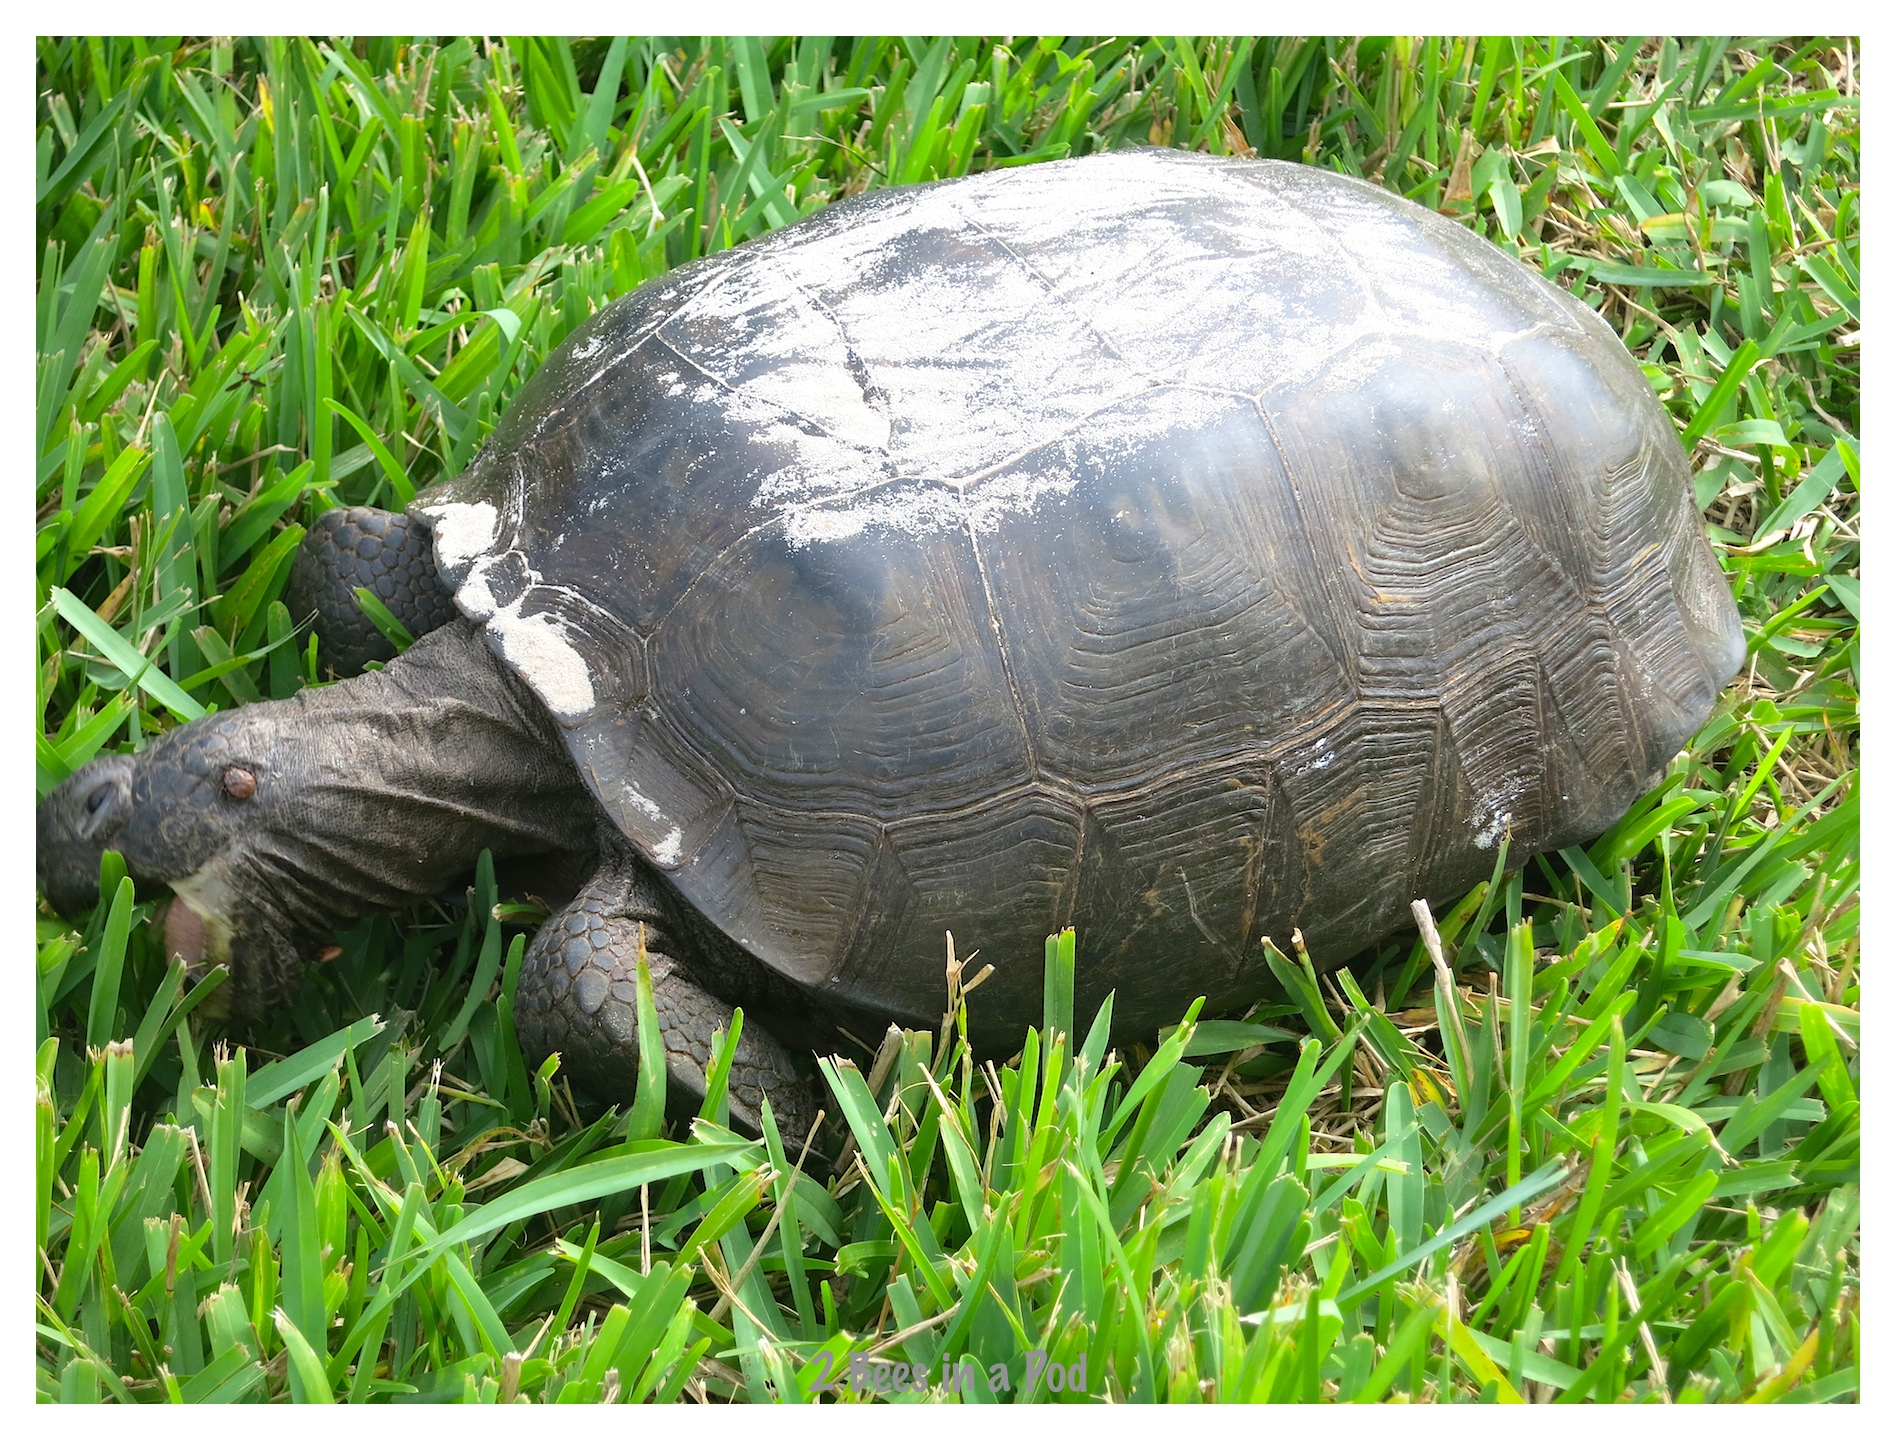 A large tortoise munching on sweet grass at Crescent Beach, Florida